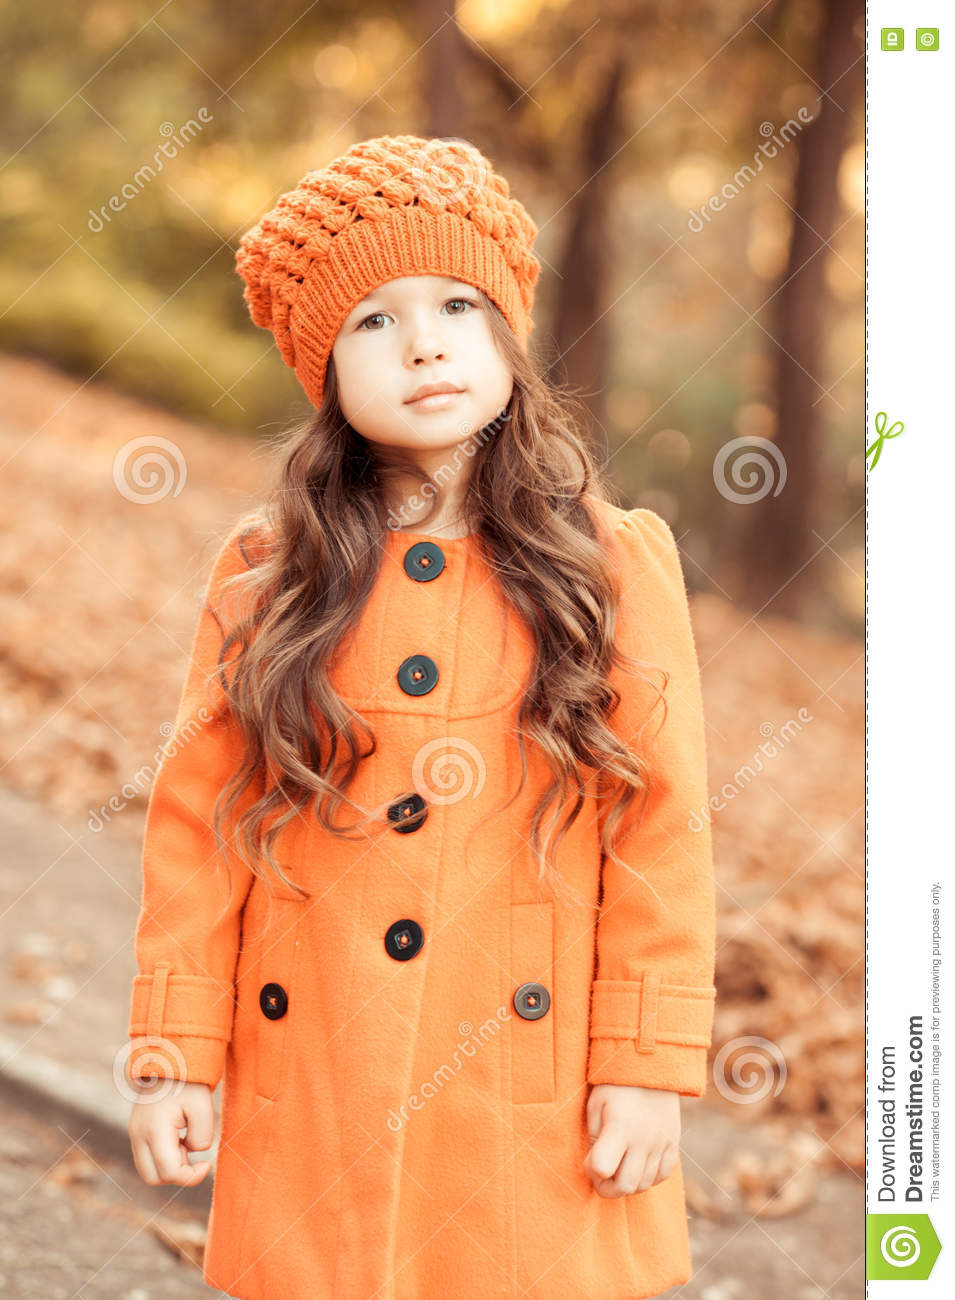 55c633f34 Stylish Baby Girl Wearing Winter Clothes Stock Image - Image of ...